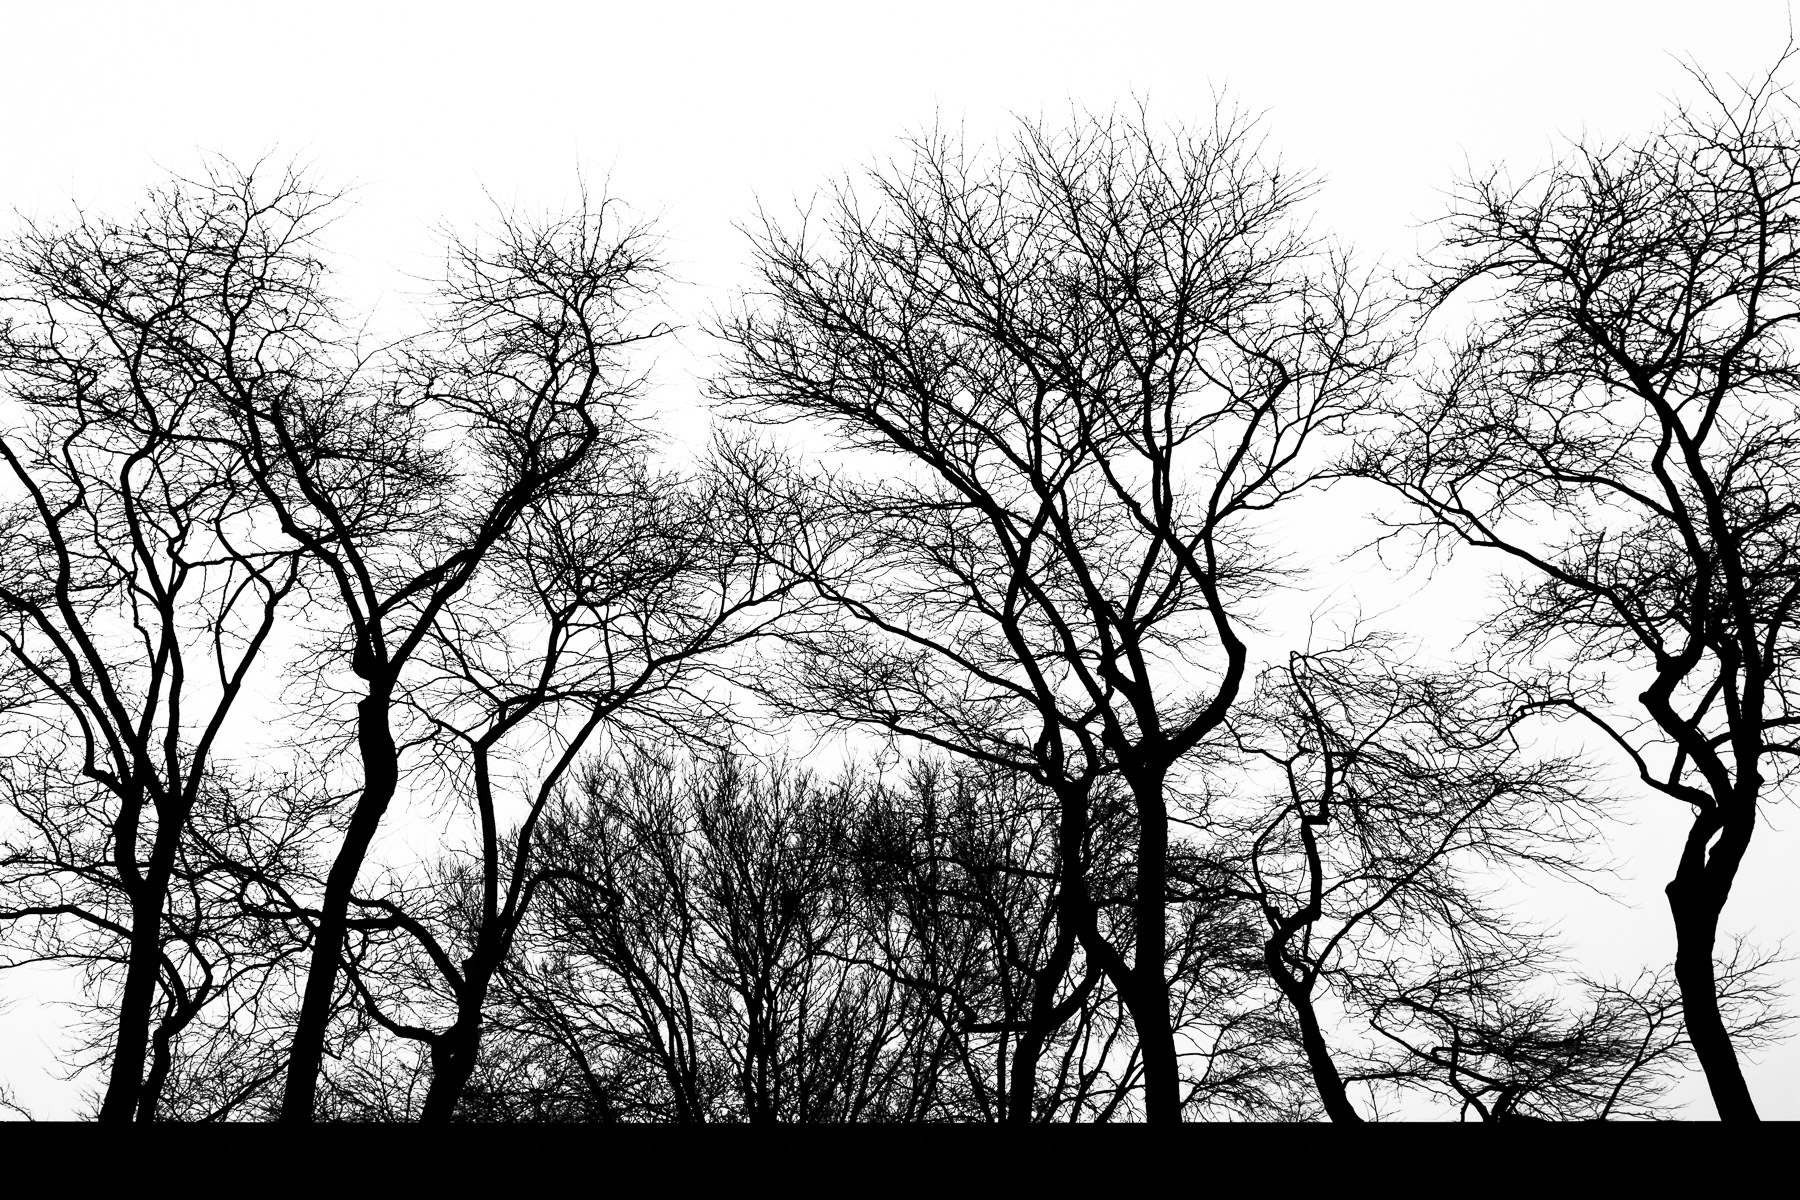 Trees in Chicago's Streeterville district, silhouetted by the dreary, overcast winter sky.